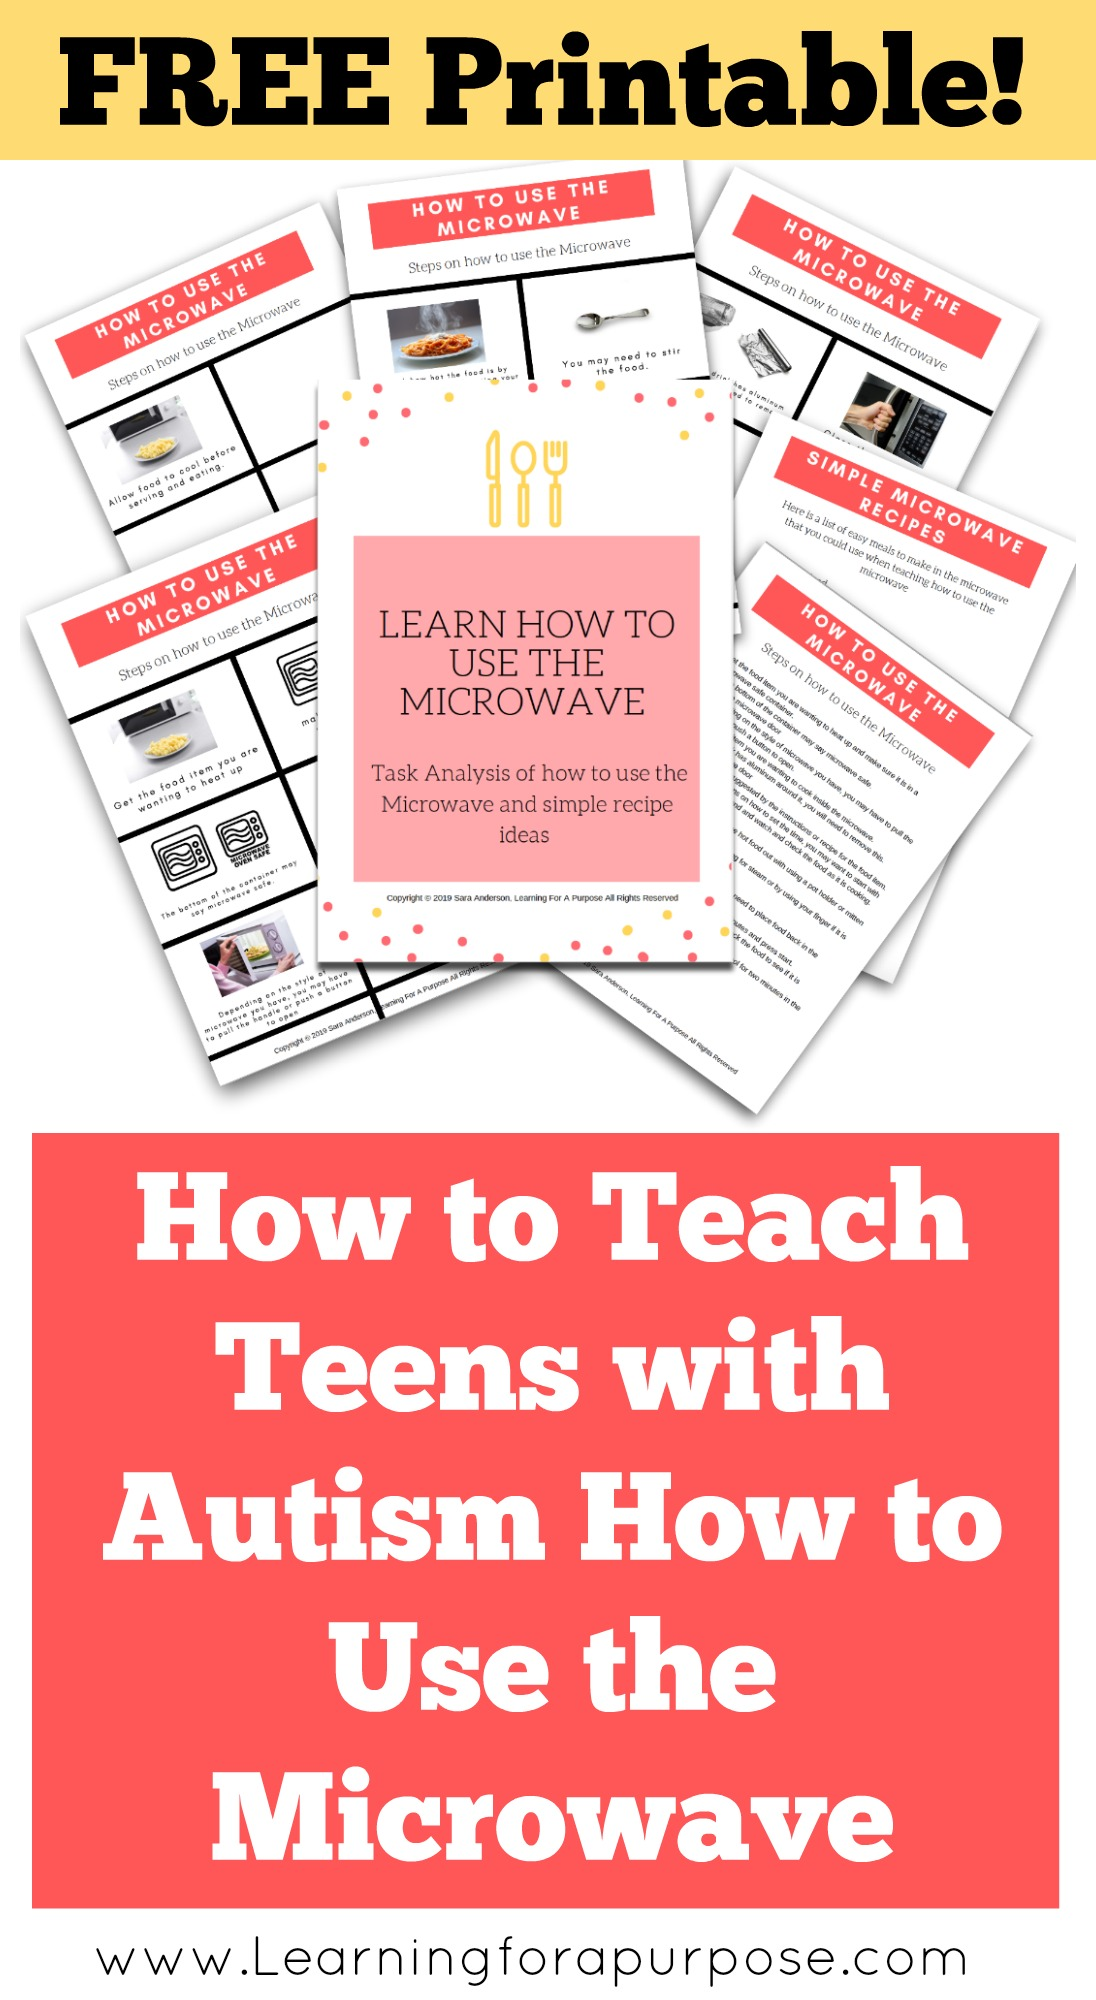 How to teach teens with autism how to use the microwave